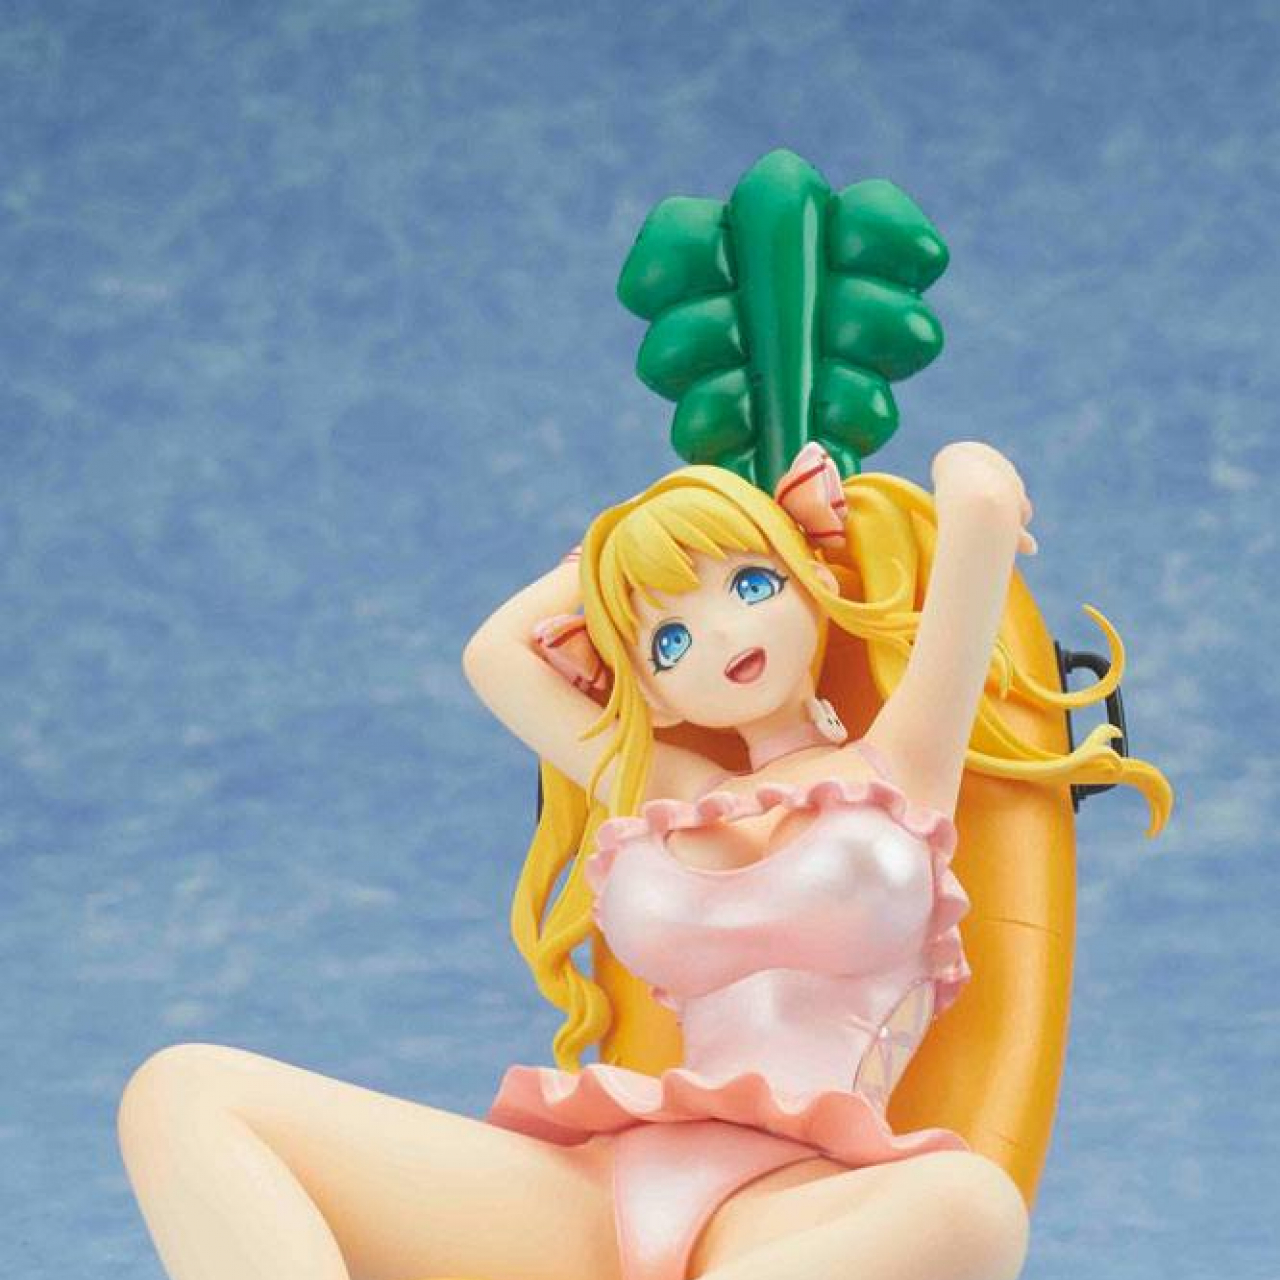 Original Character Statue 1/7 Aqua Princess Alice illustration by Masami Chie 24 cm